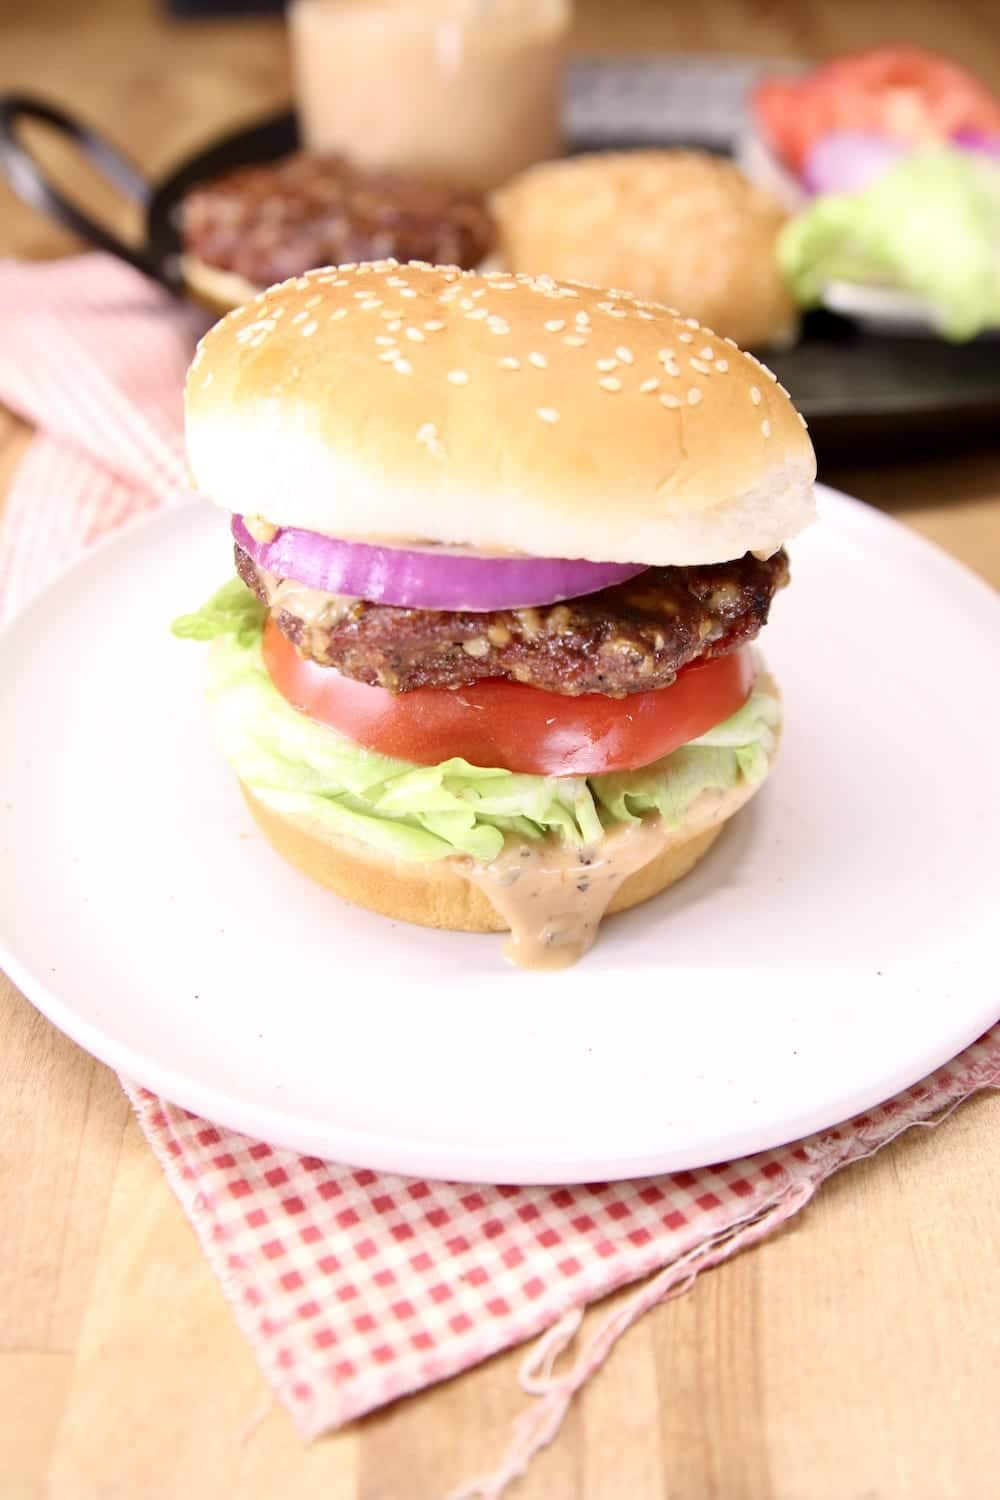 grilled burger on a bun - plated